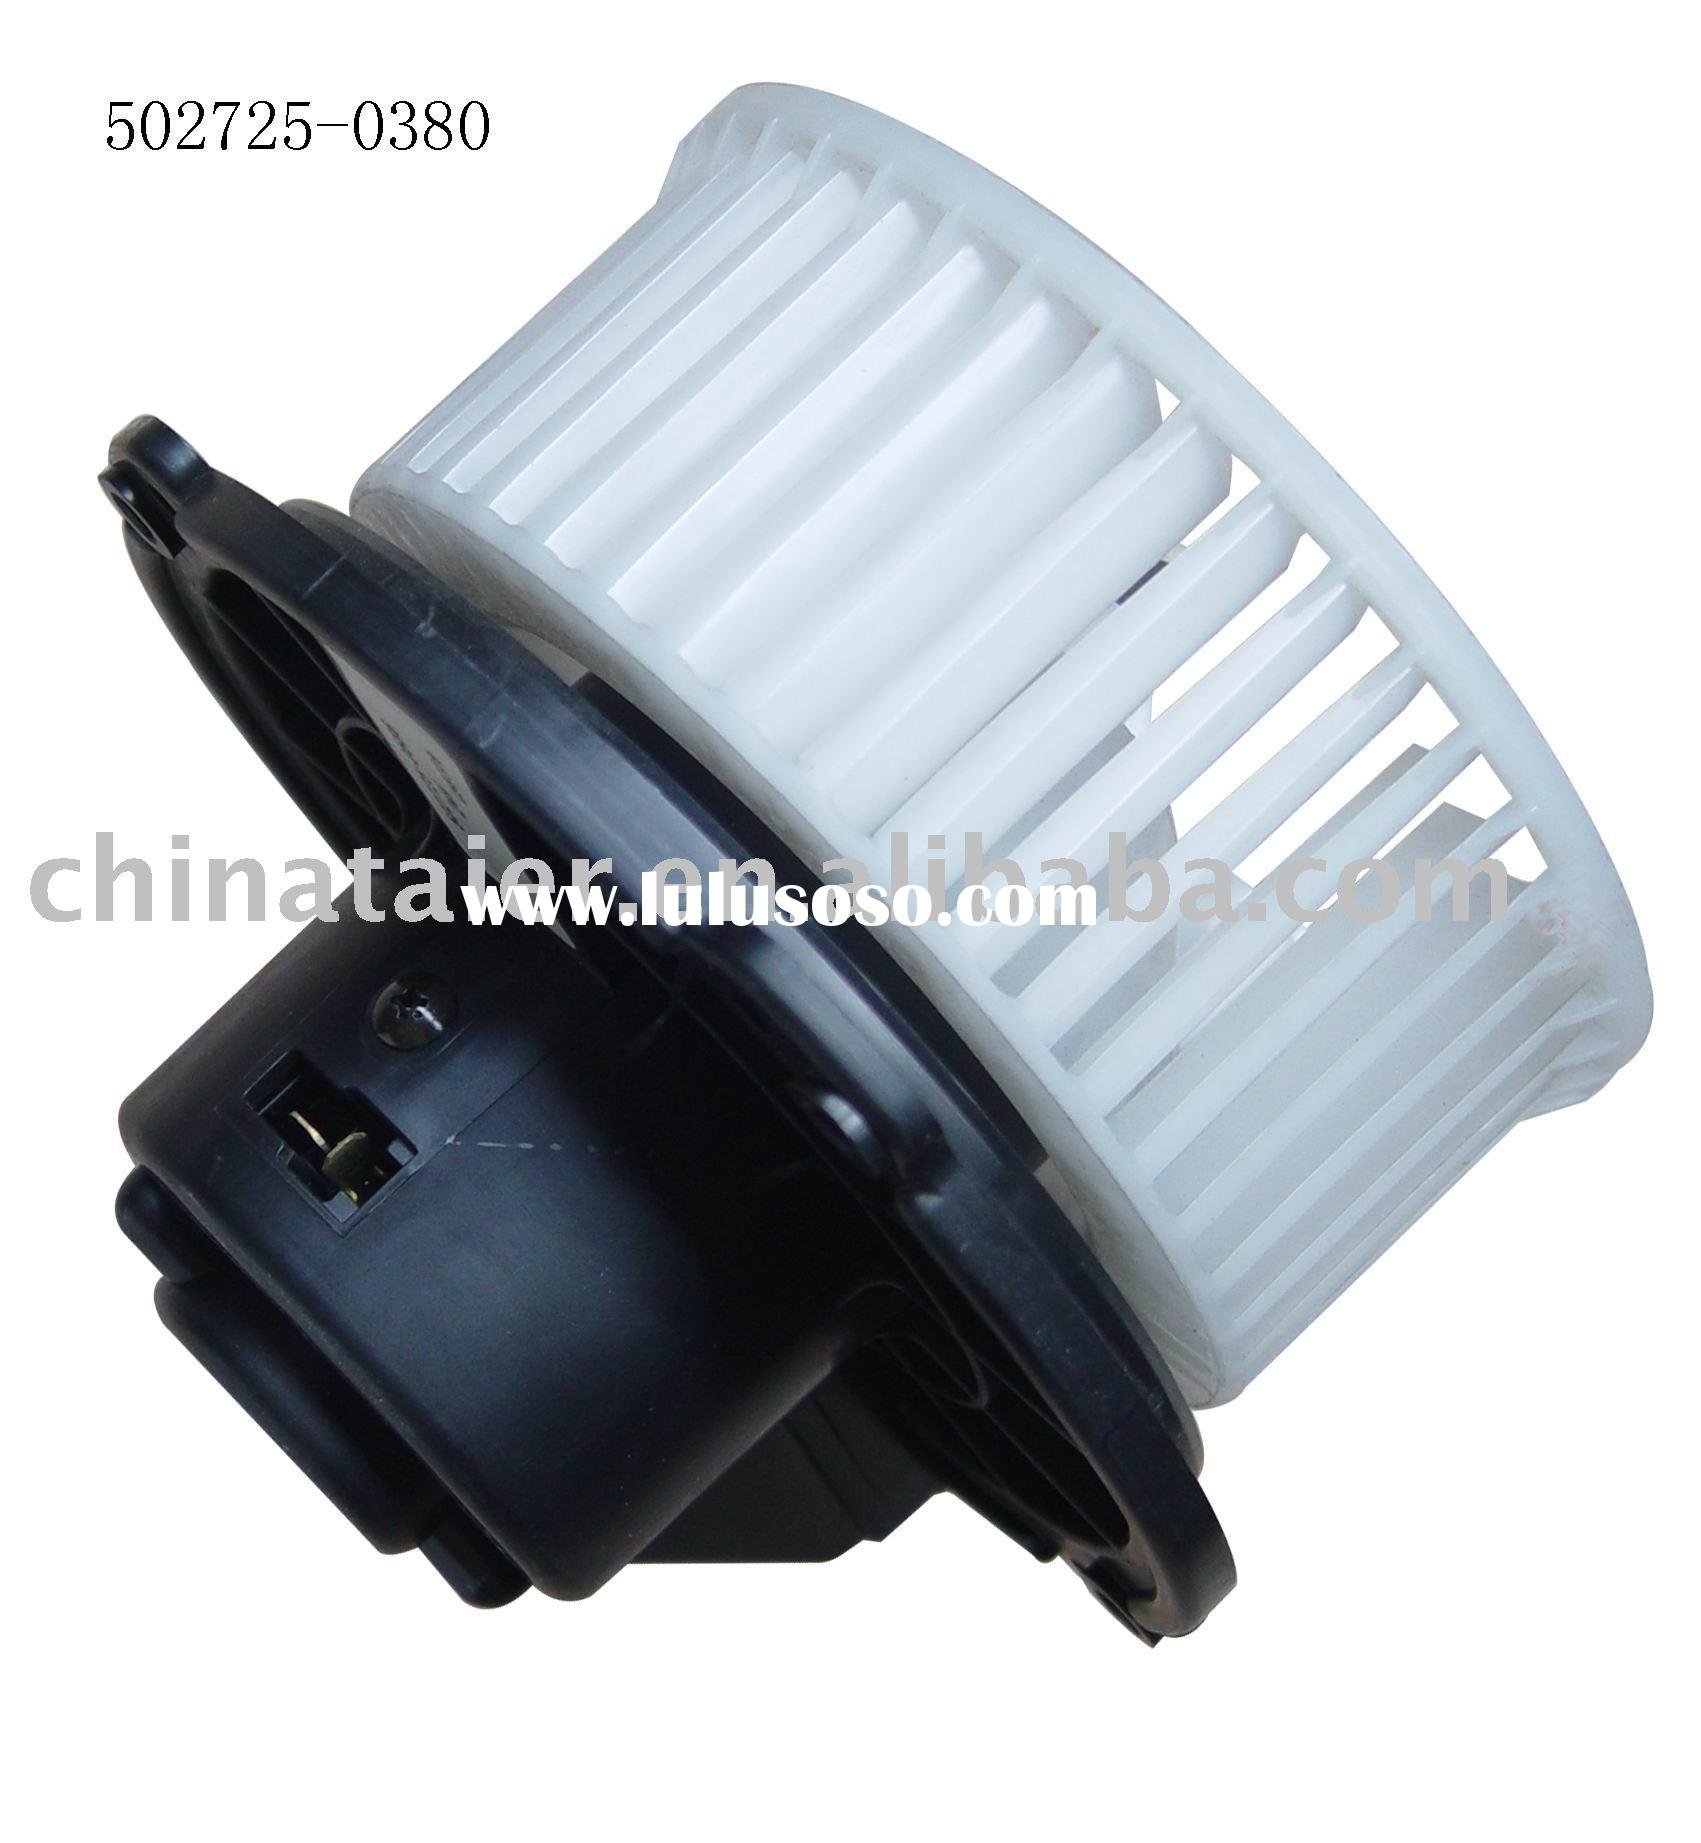 Car Ac Blower Motor Replacement Cost